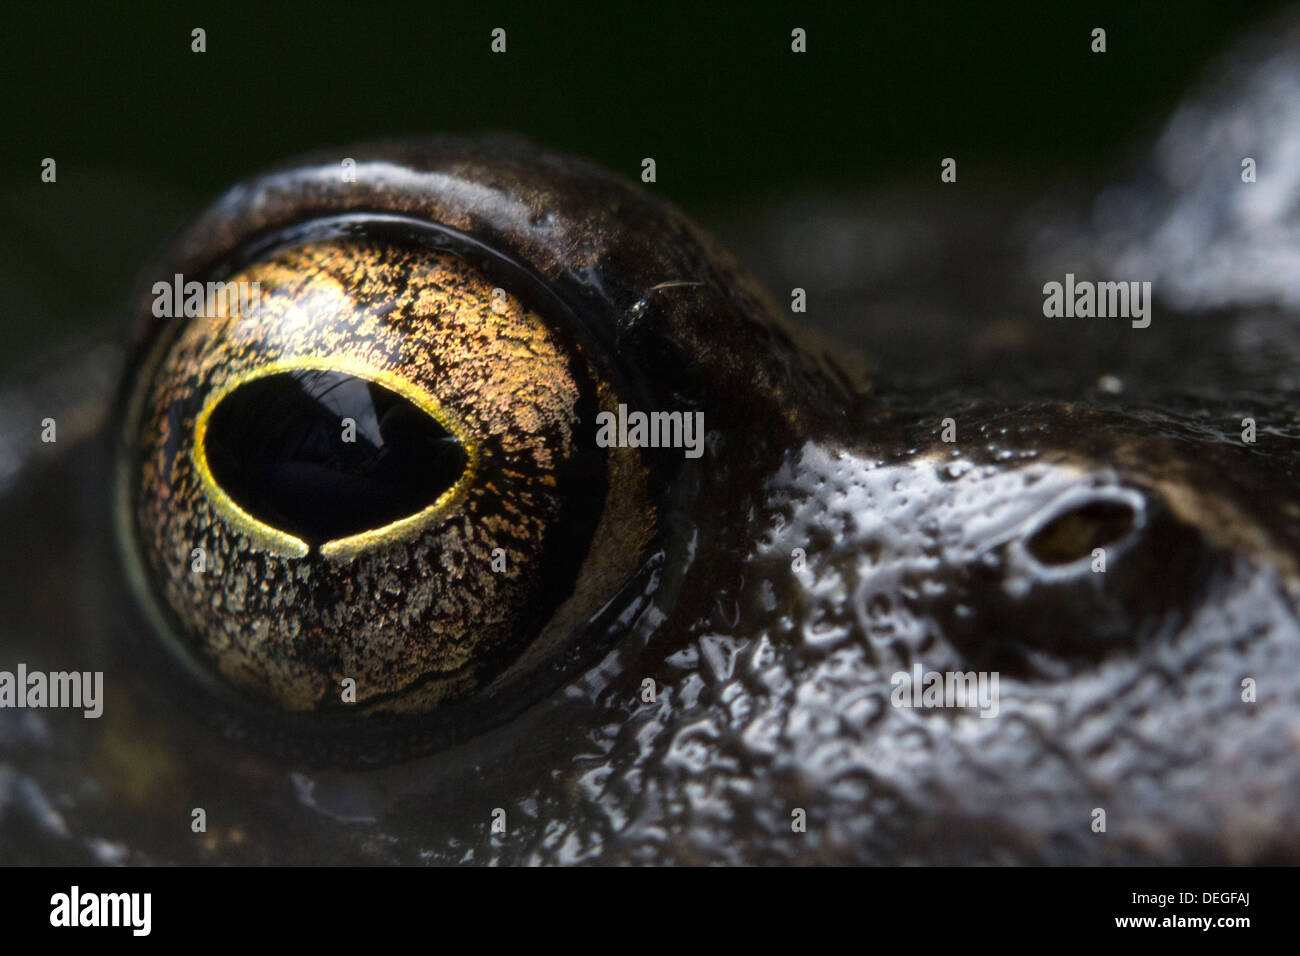 The eye of a common frog - Stock Image